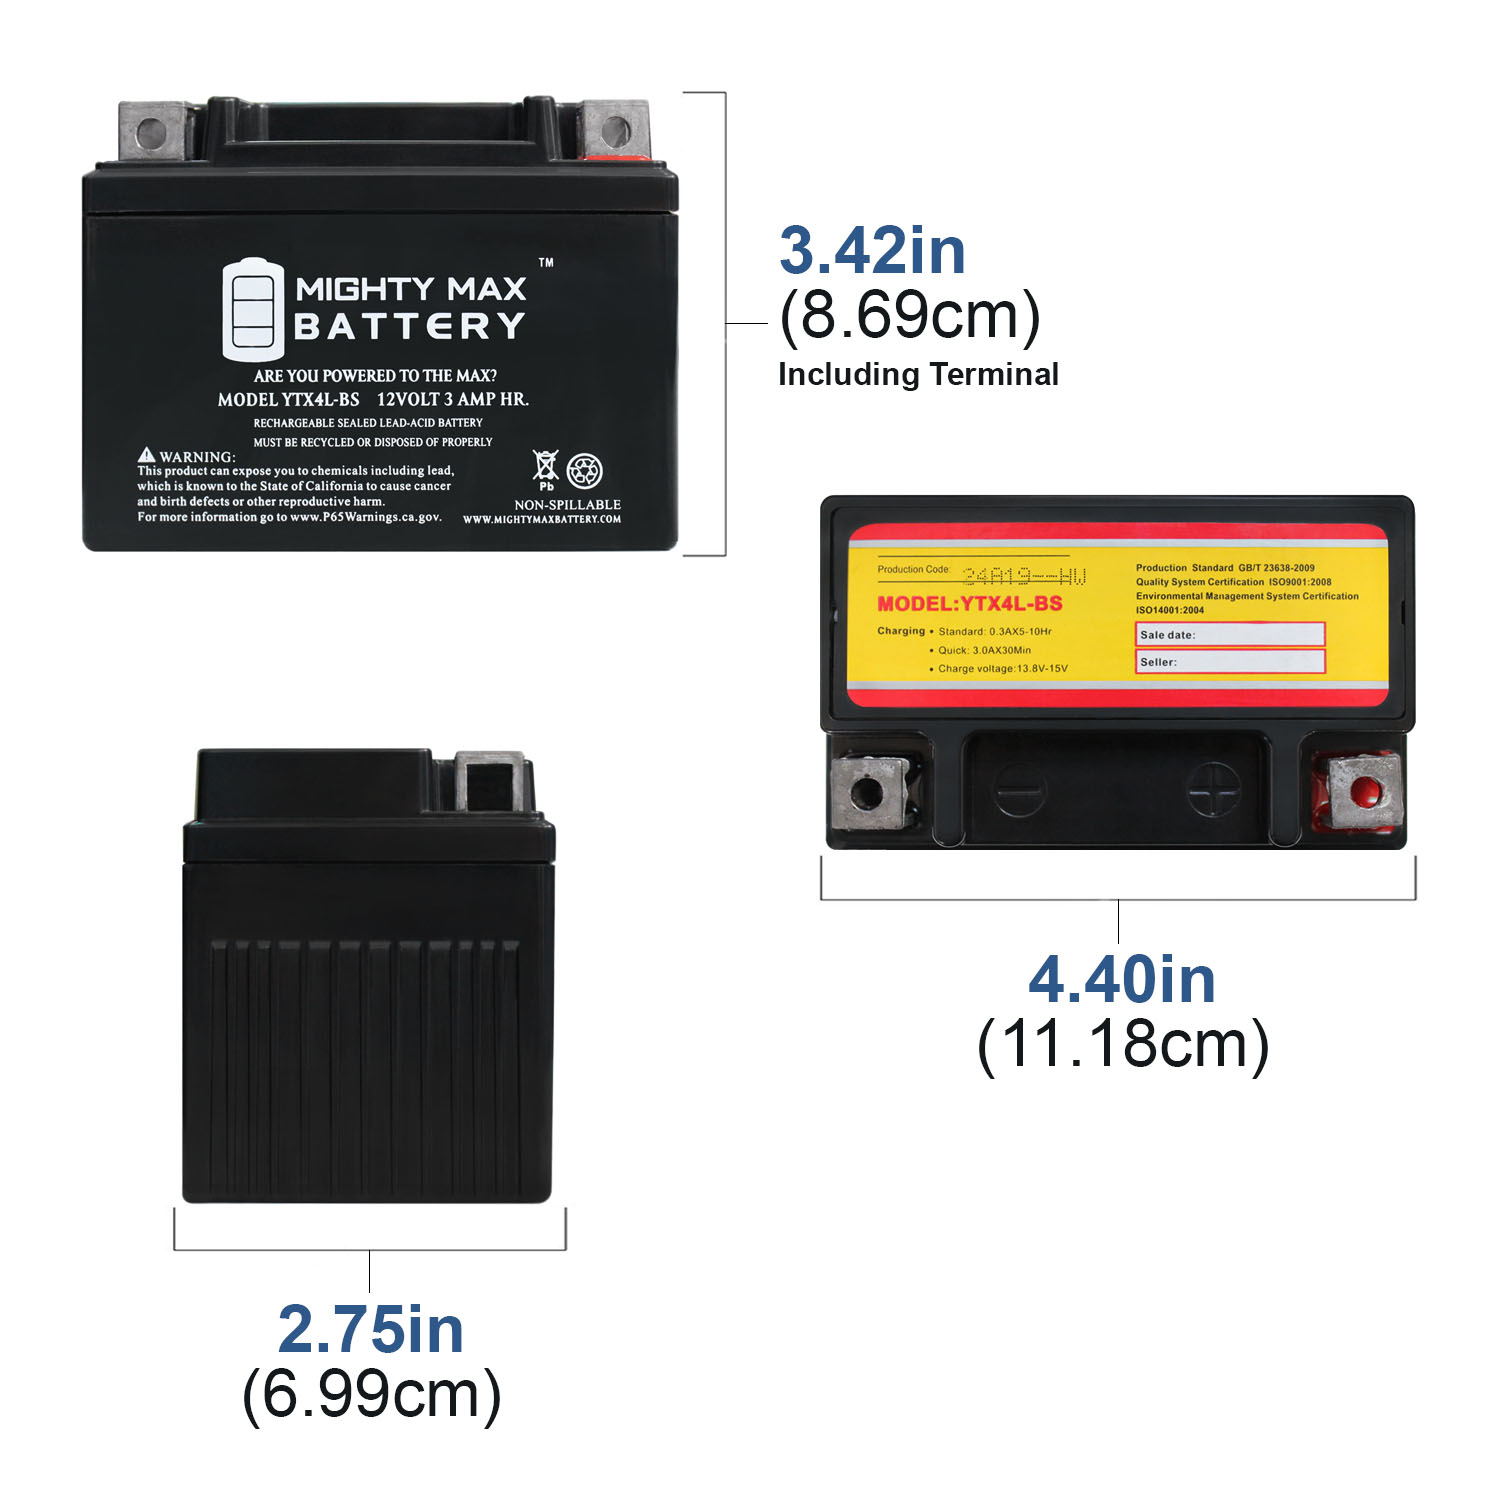 YTX4L-BS 12 VOLT 3AH MOTORCYCLE BATTERY REPLACES YTX4L-BS - 3 PACK - 1